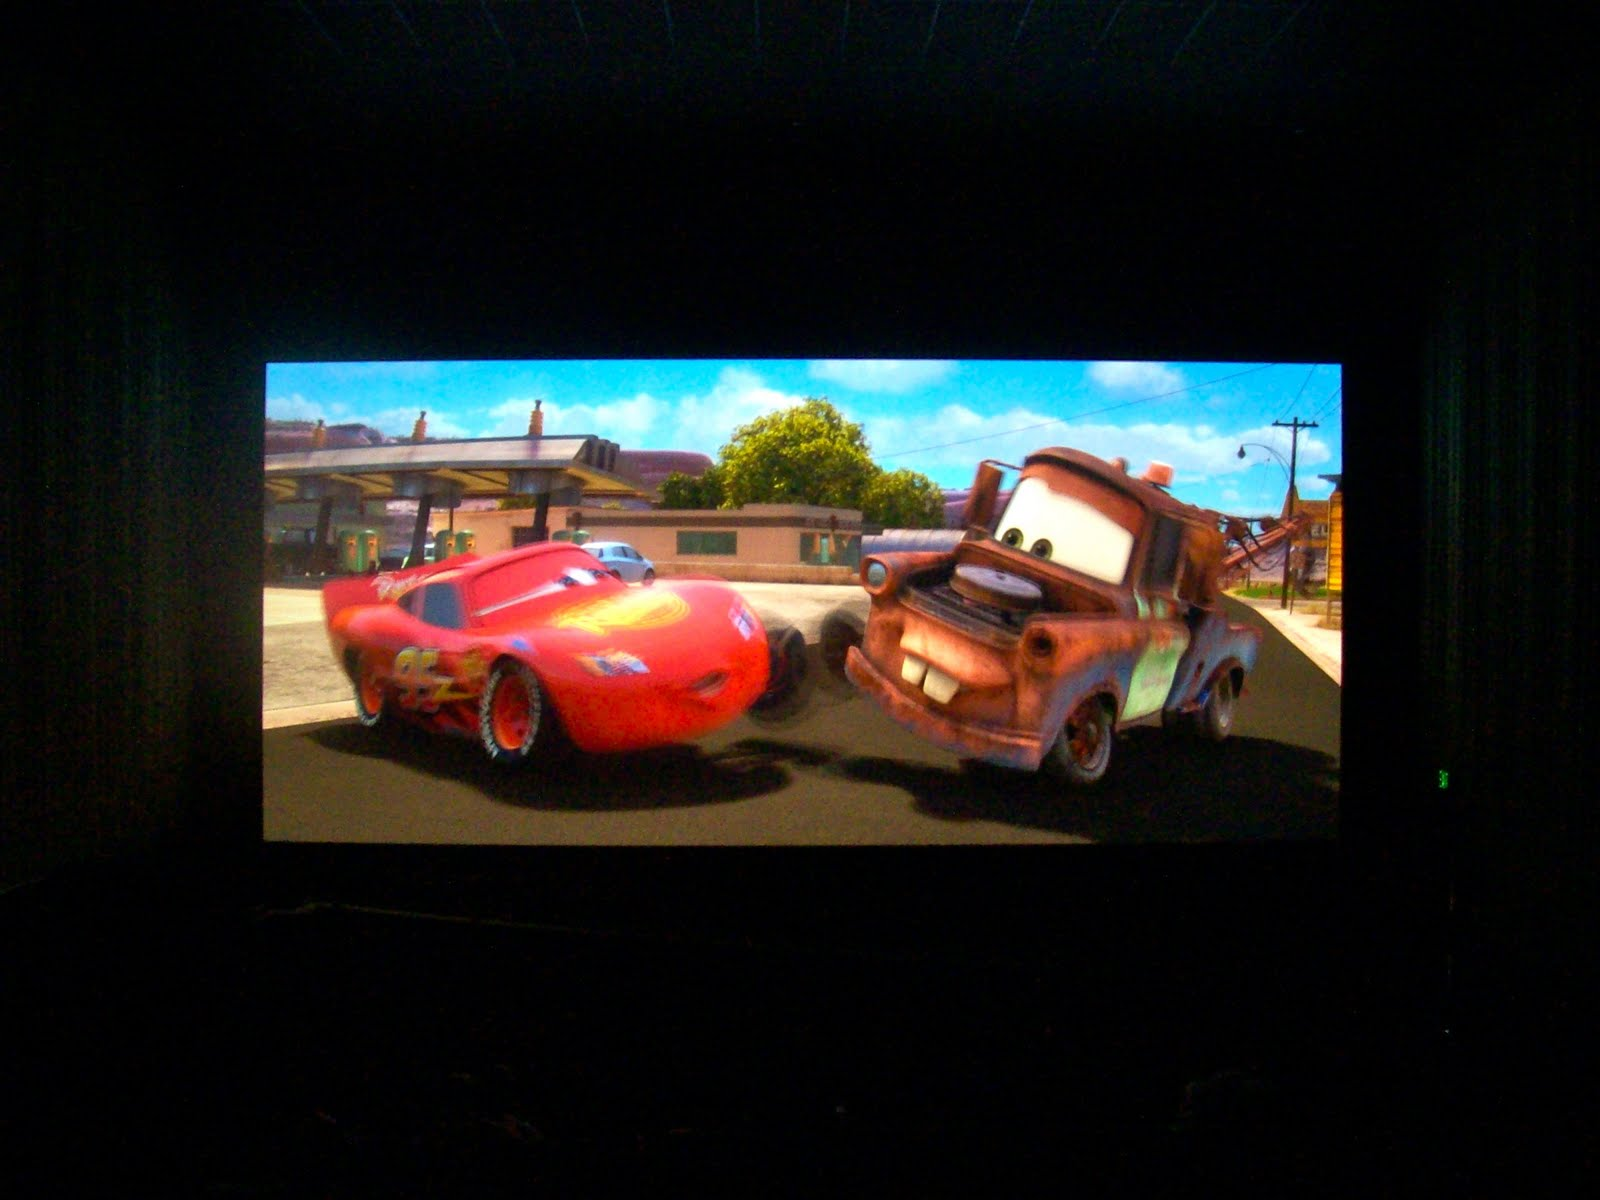 grass stains: Cars 2: An informal review